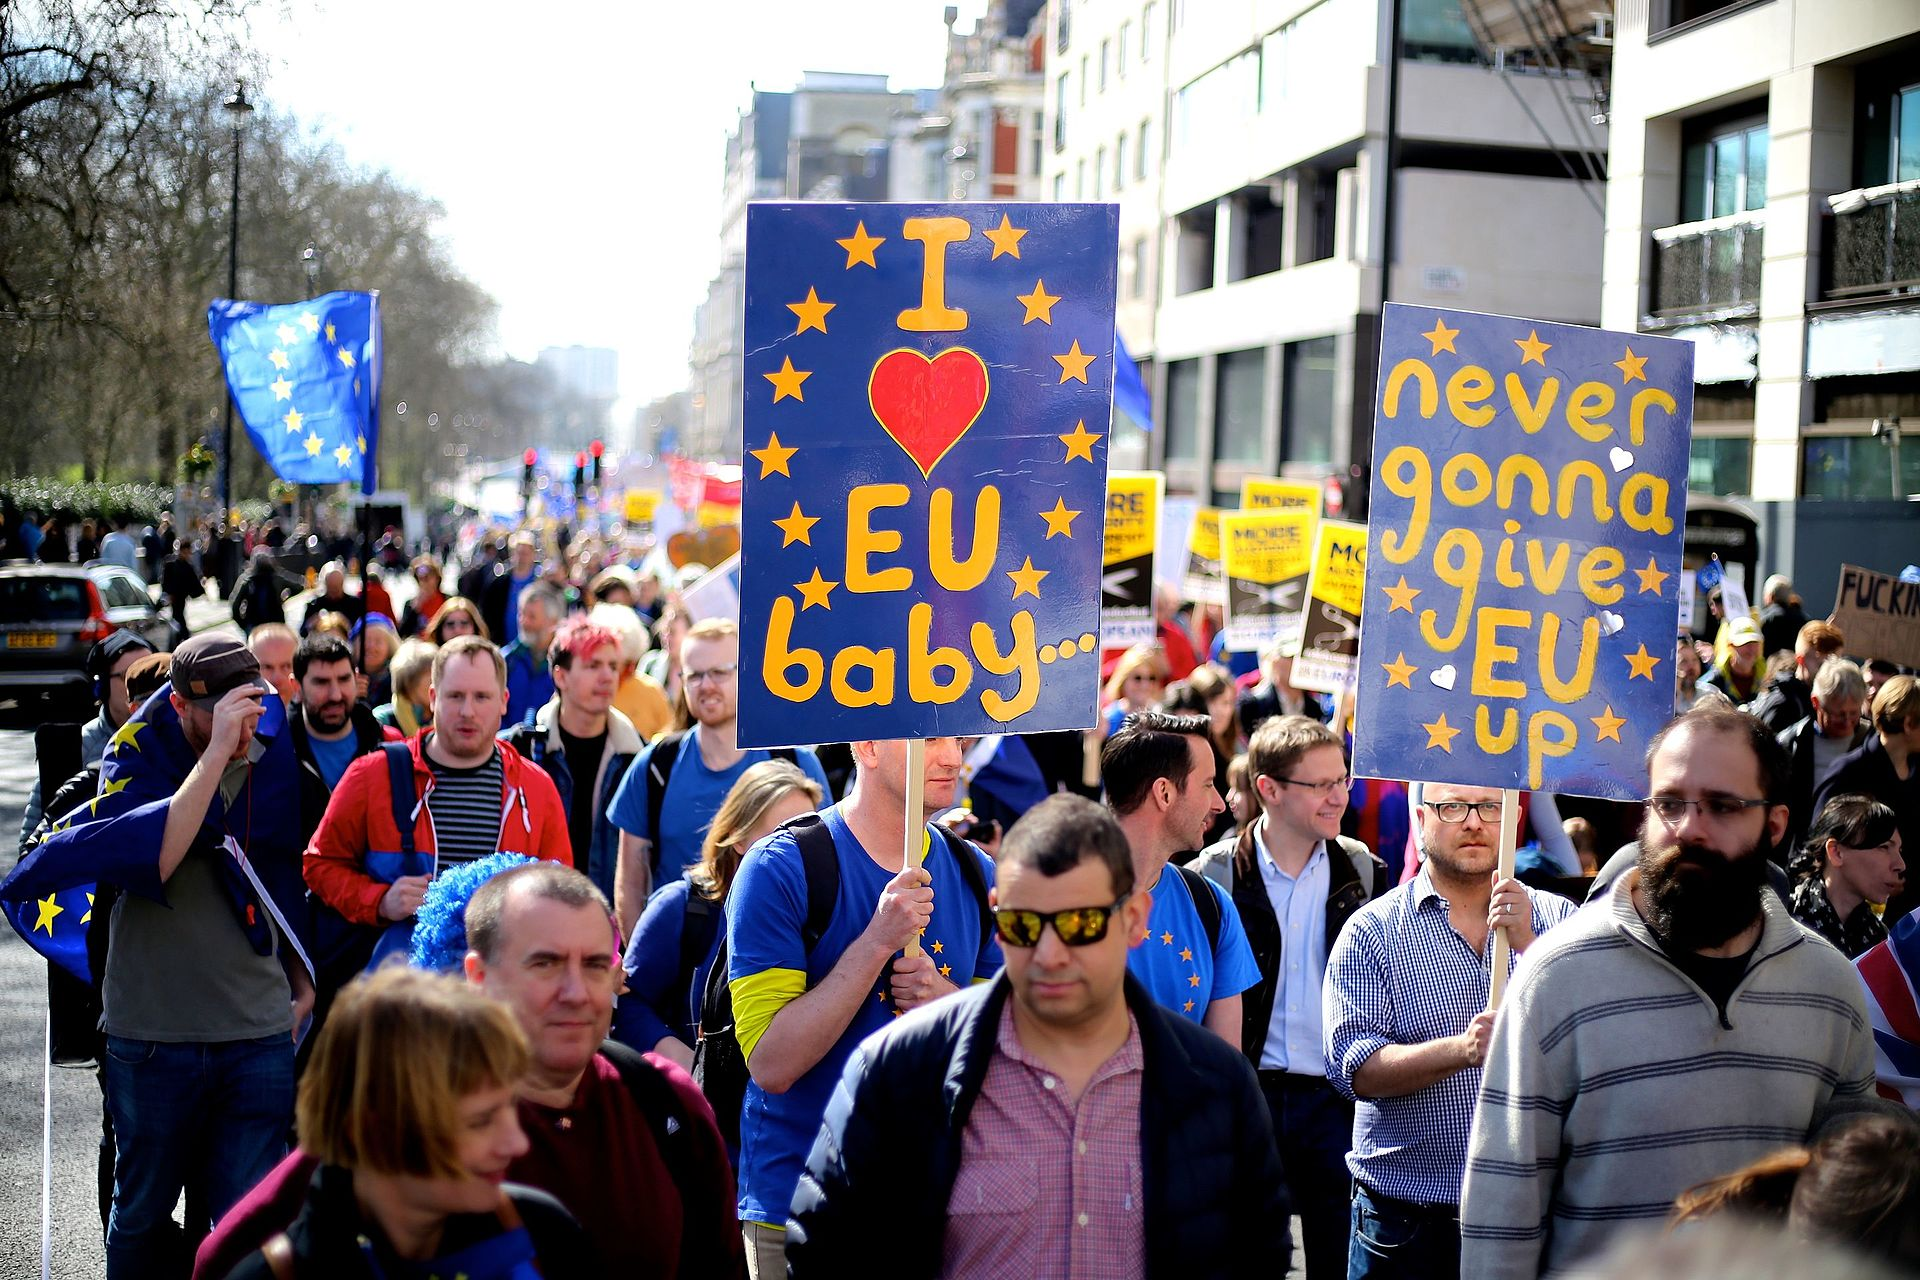 The pro-EU march from Hyde Park to Westminster in London on March 25, 2017 (photograph via Ilovetheeu/Wikimedia Commons)